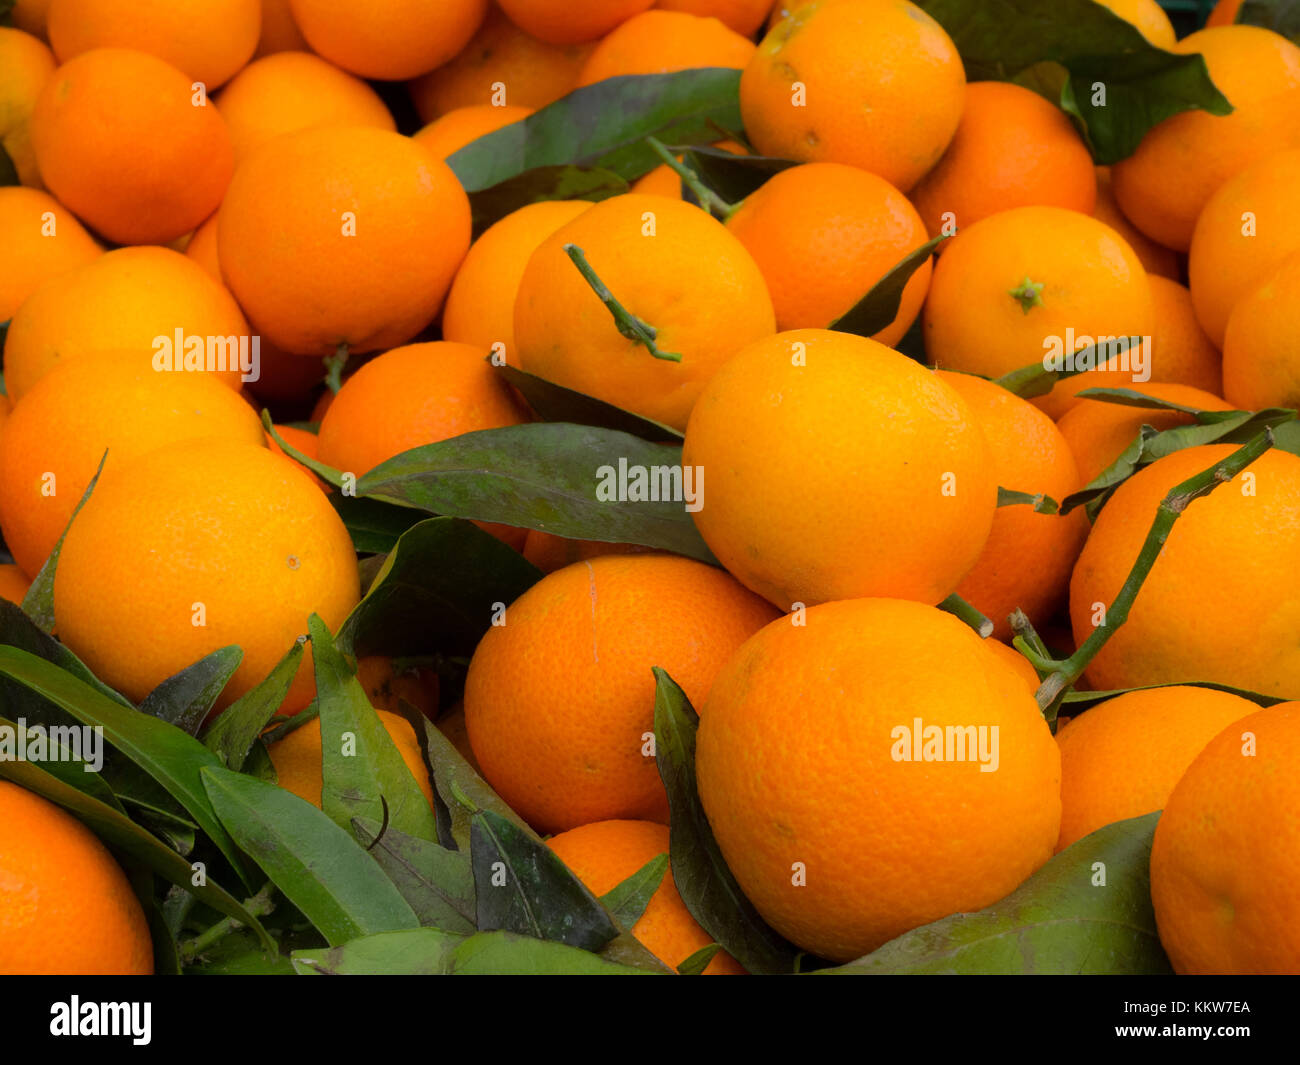 clementines on a market - Stock Image